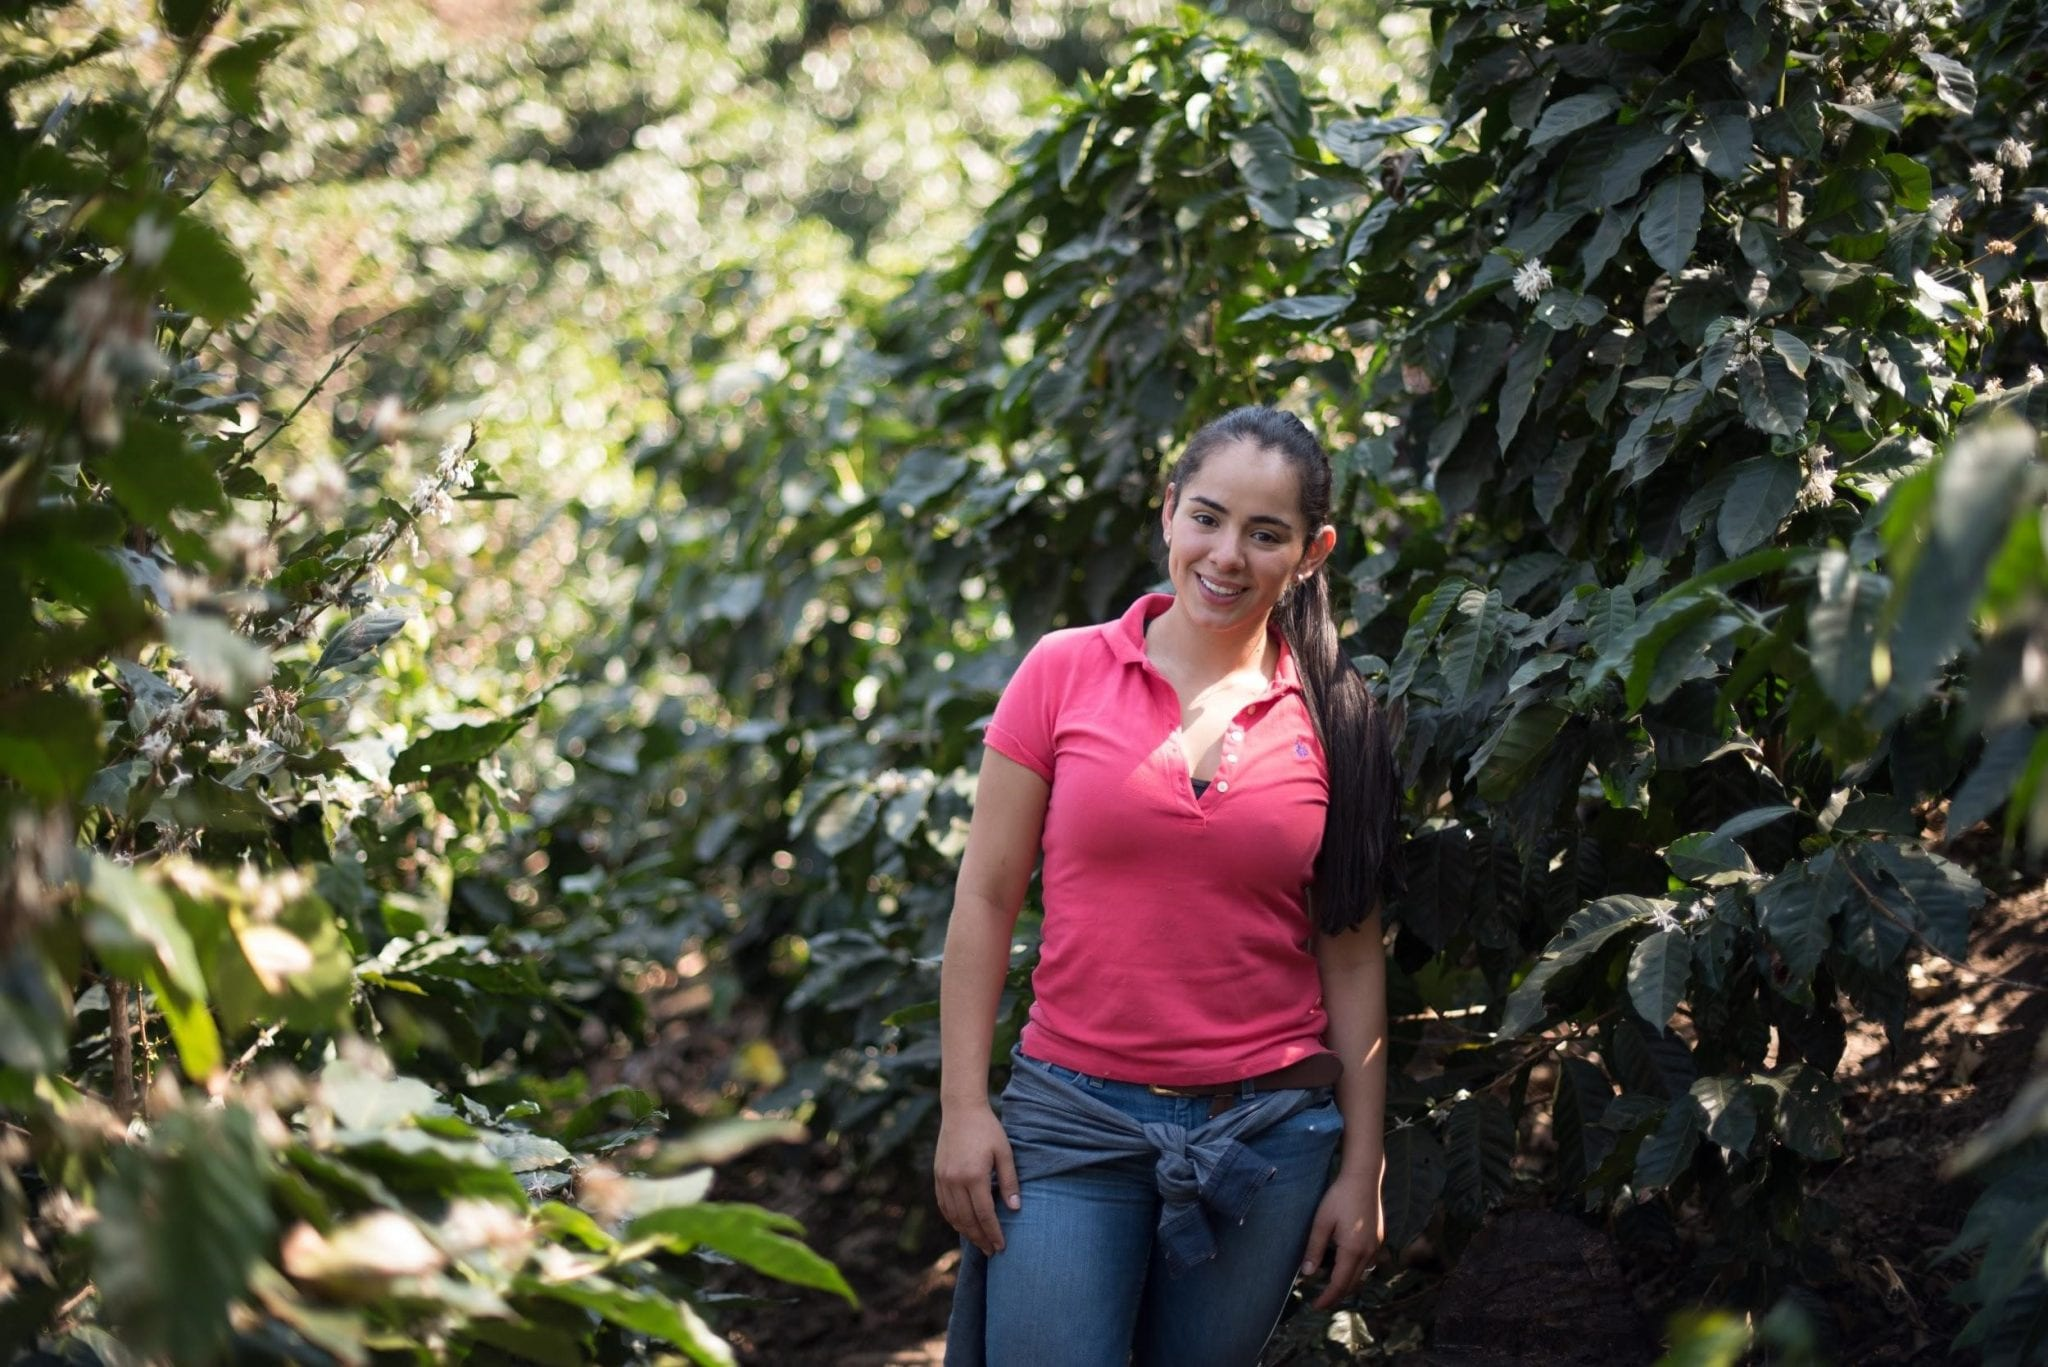 female coffee producer among the coffee trees on her farm